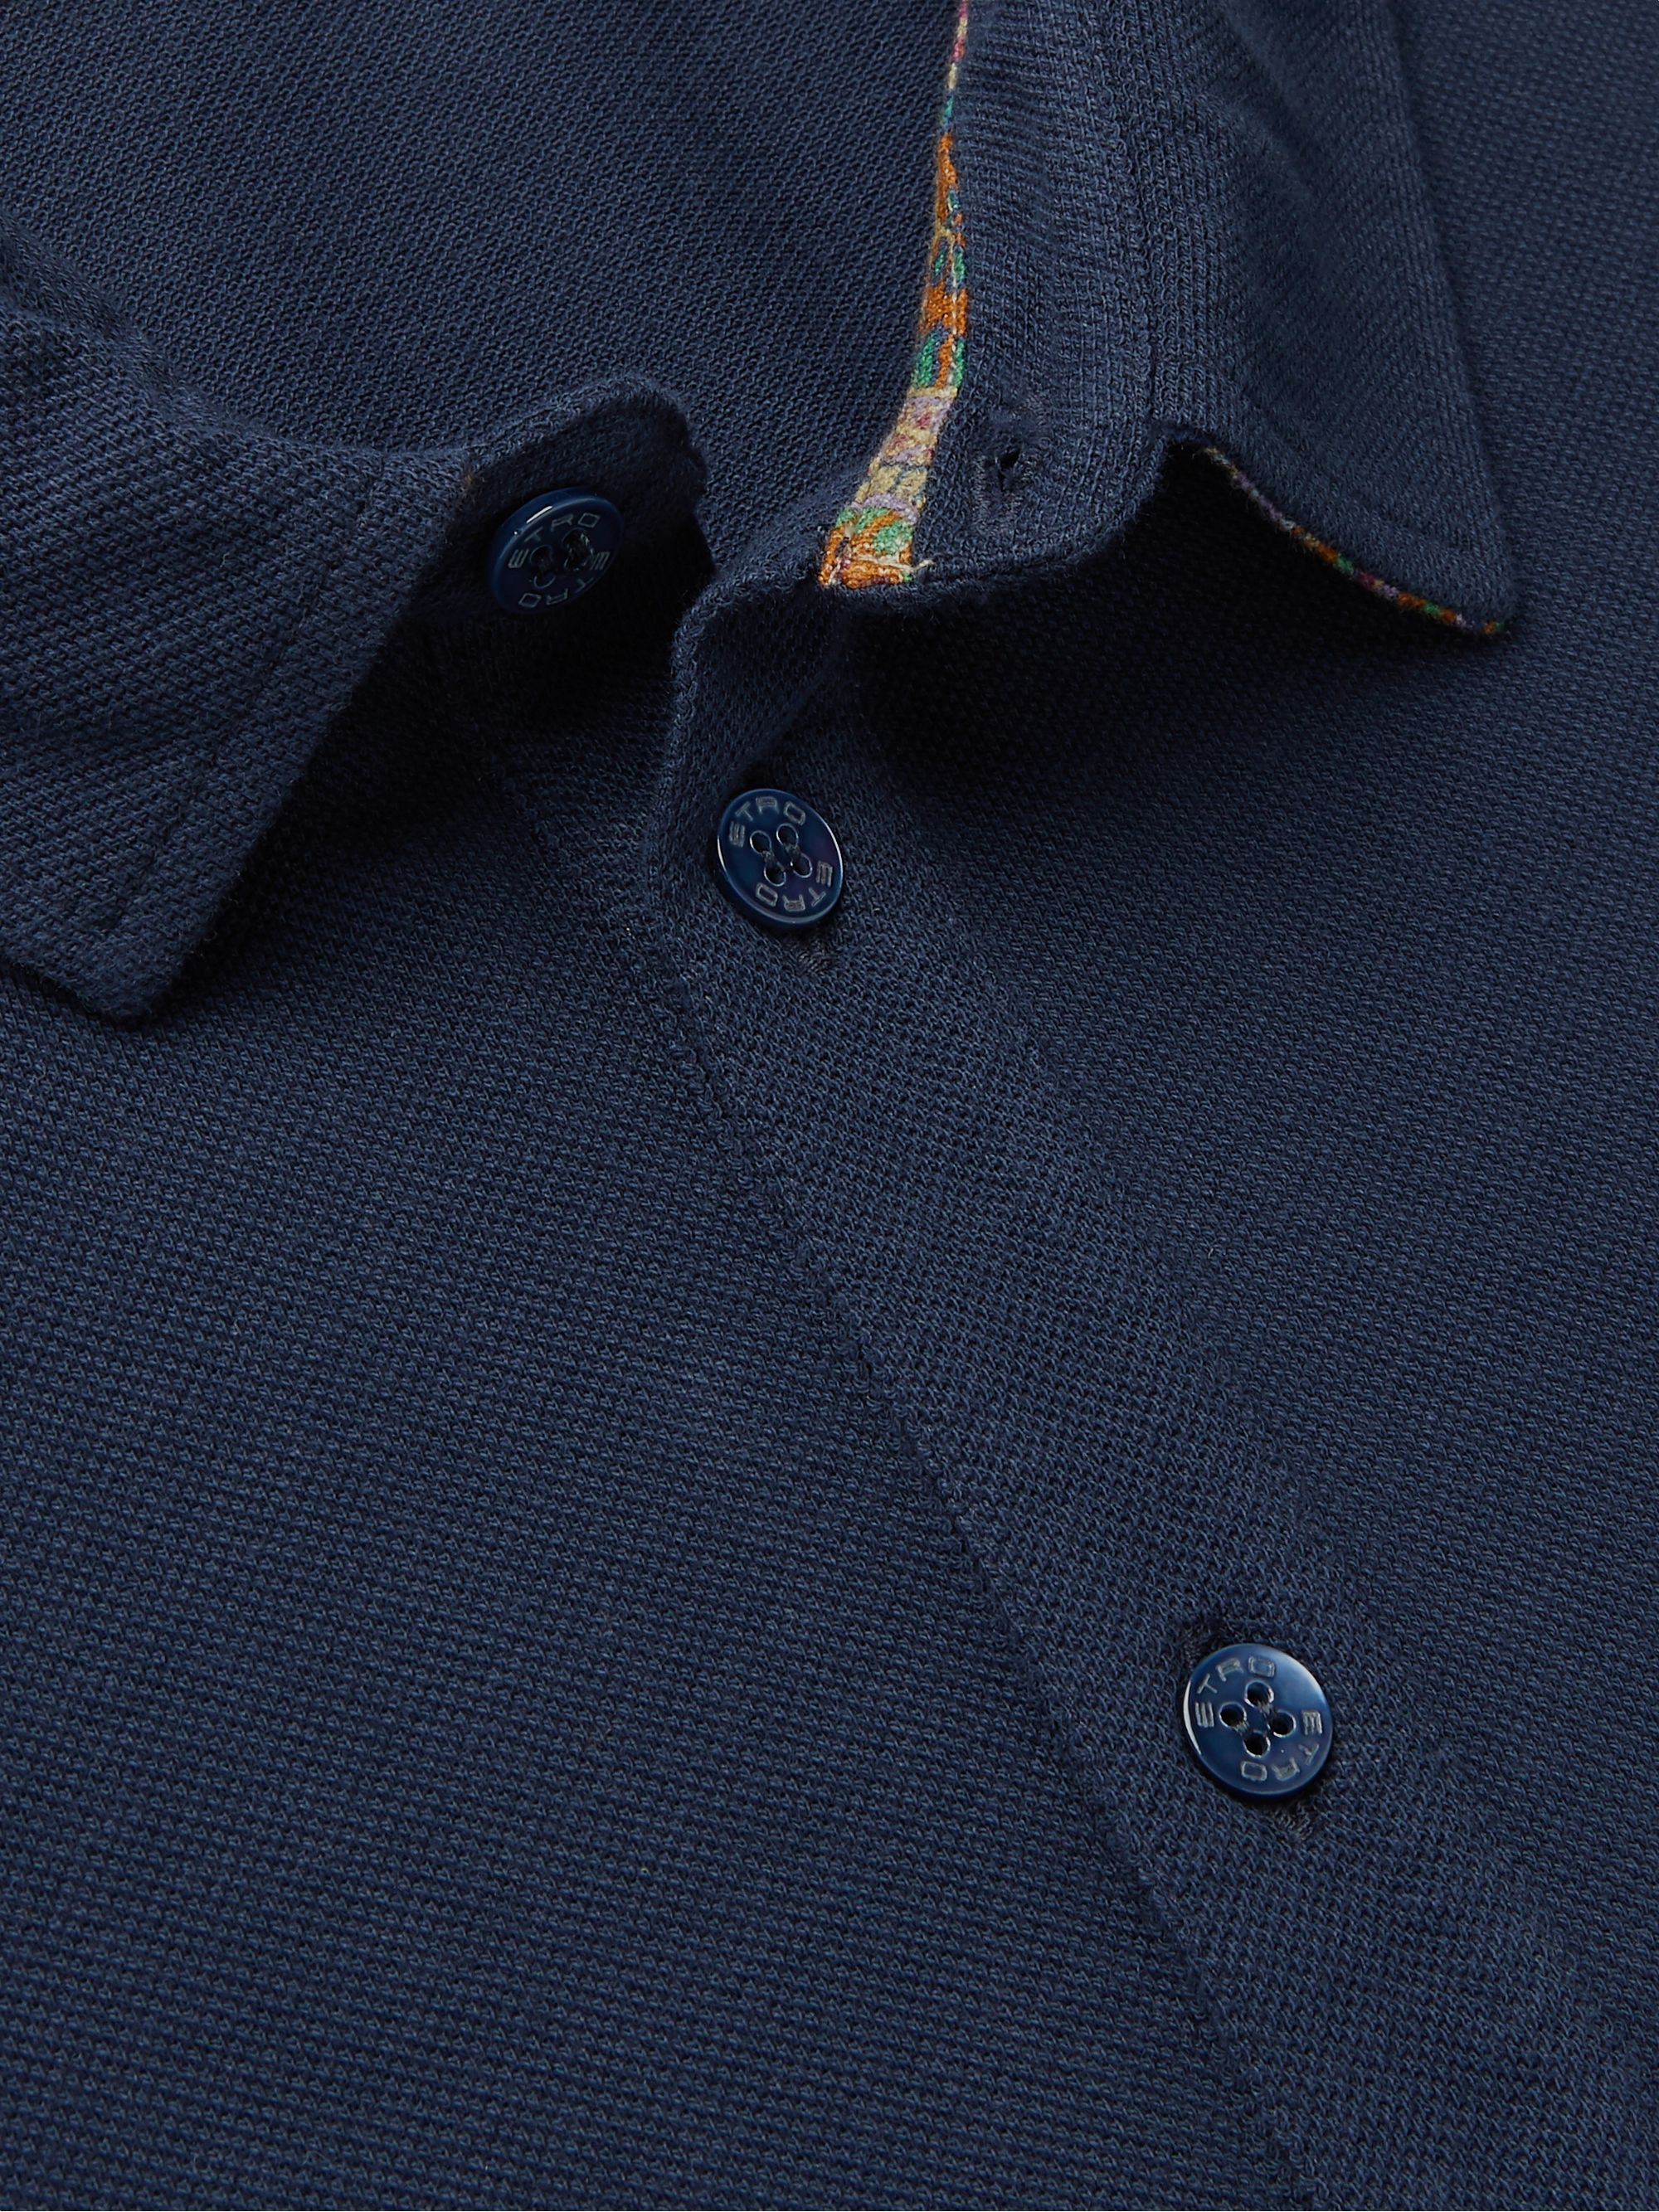 Etro Cotton-Piqué Polo Shirt